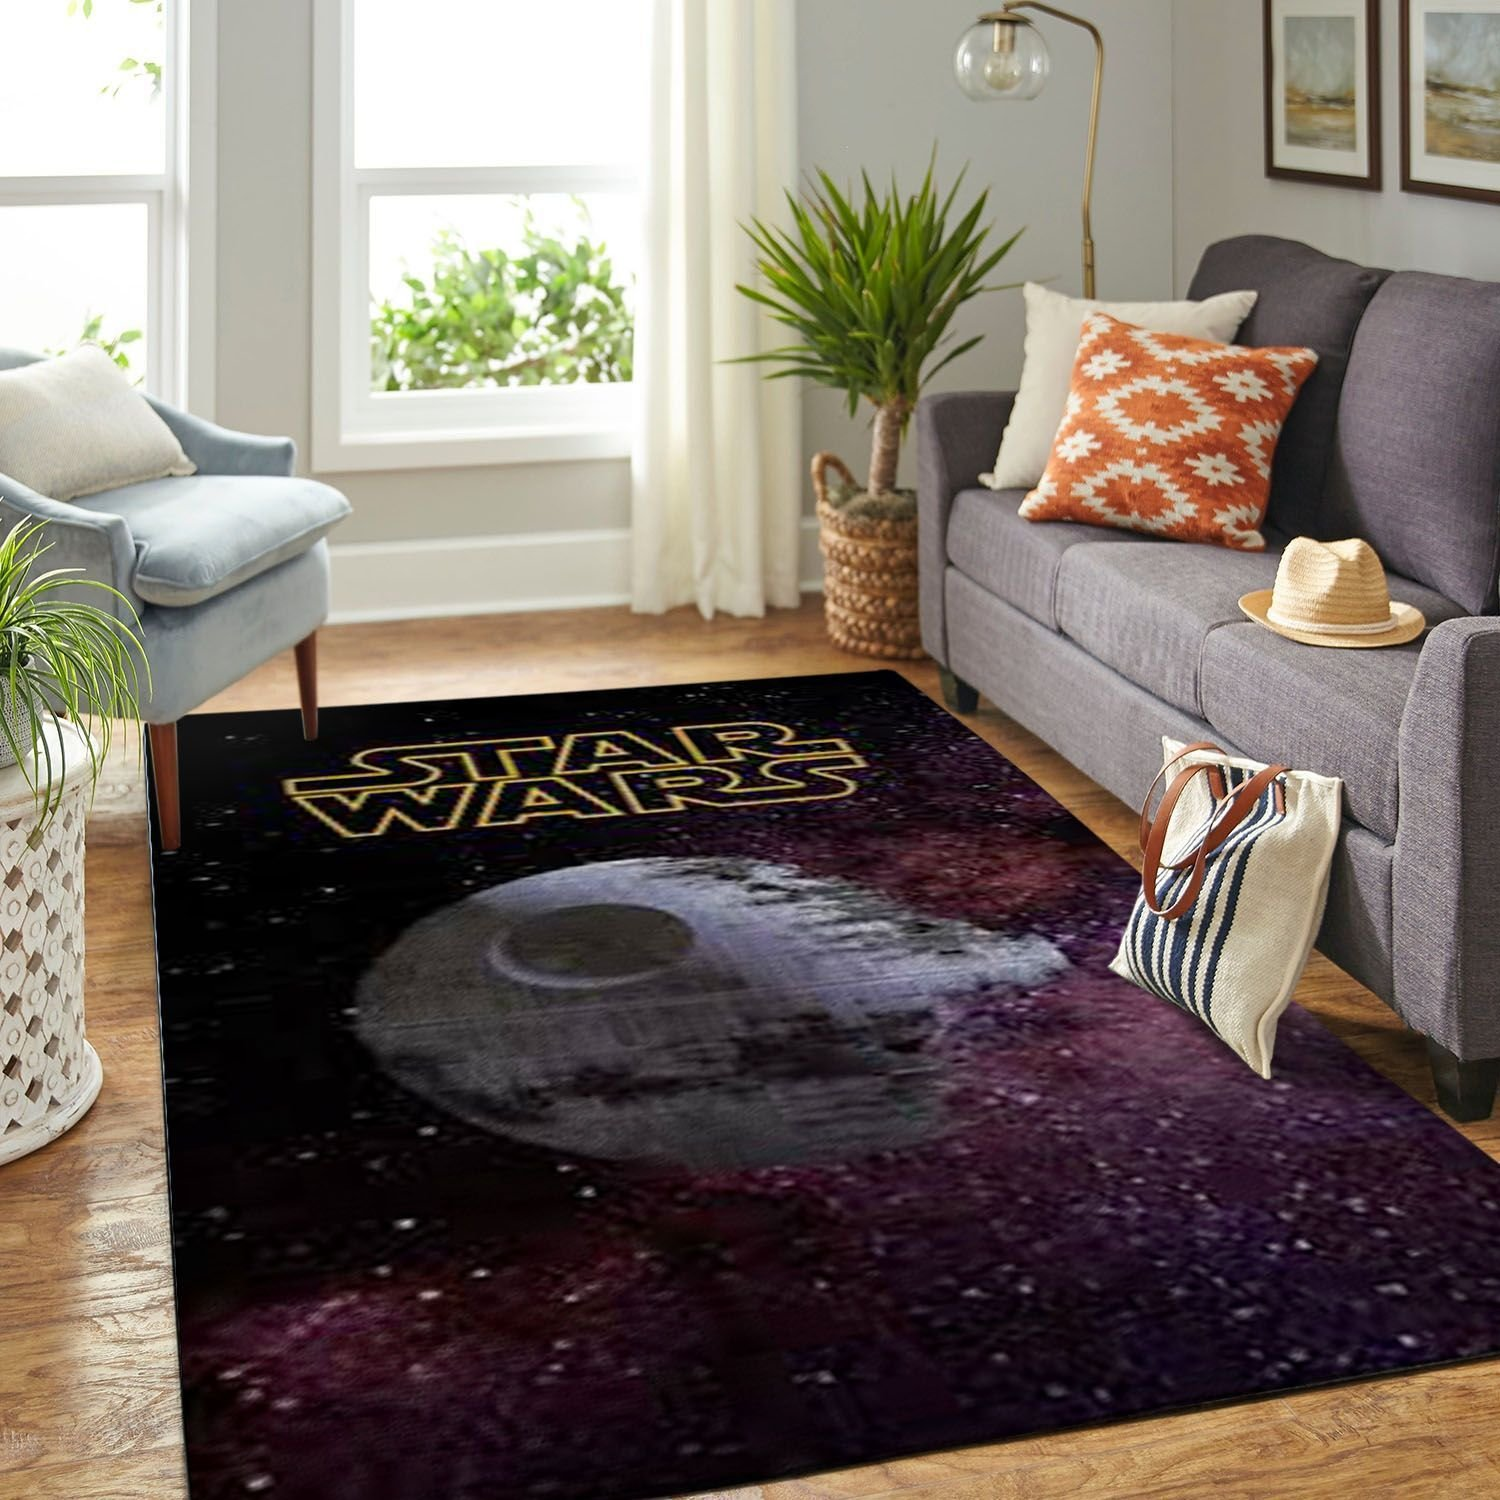 Amazon Starwars Living Room Area No6659 Rug